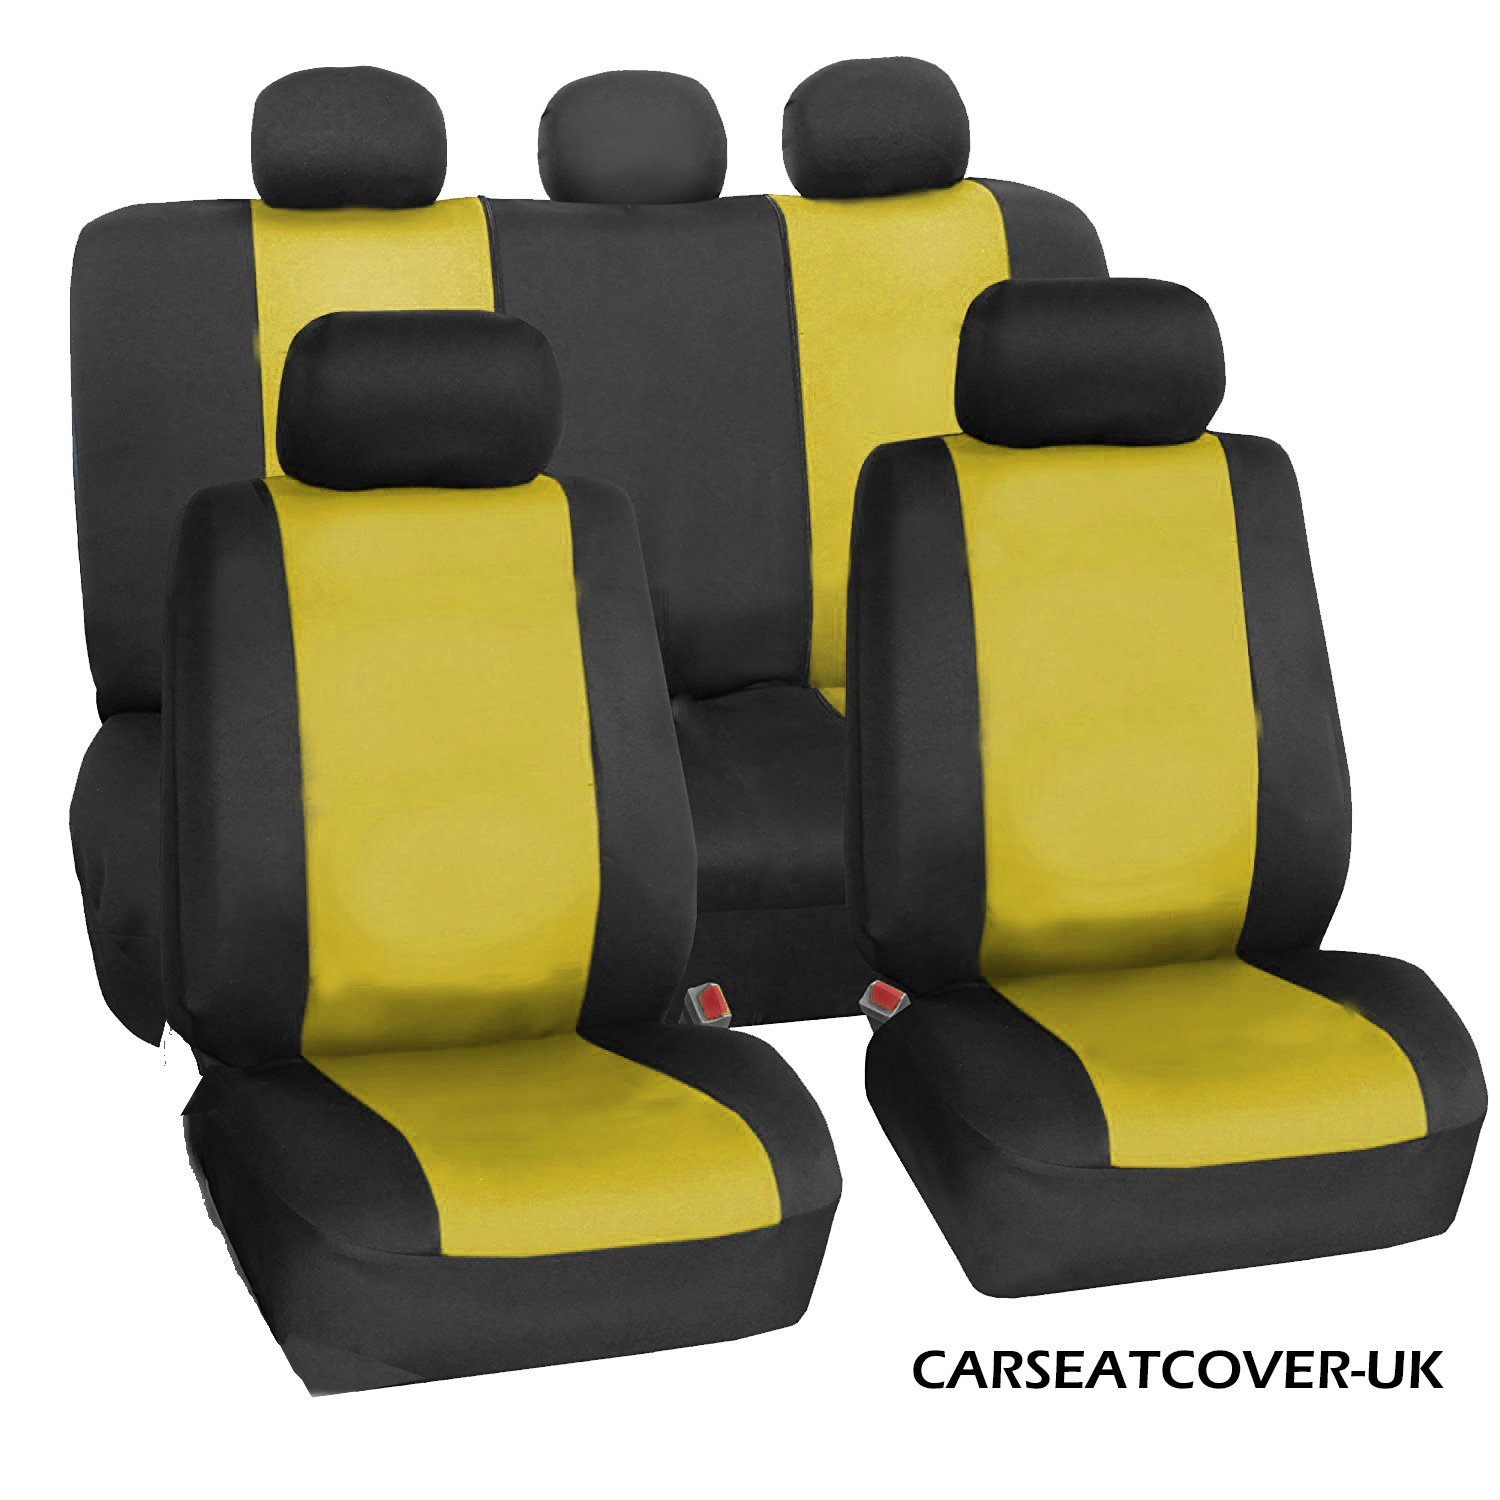 LEATHERETTE Airbag Friendly Front & Rear FULL SET of Car Seat Covers YELLOW & BLACK Carseatcover-uk